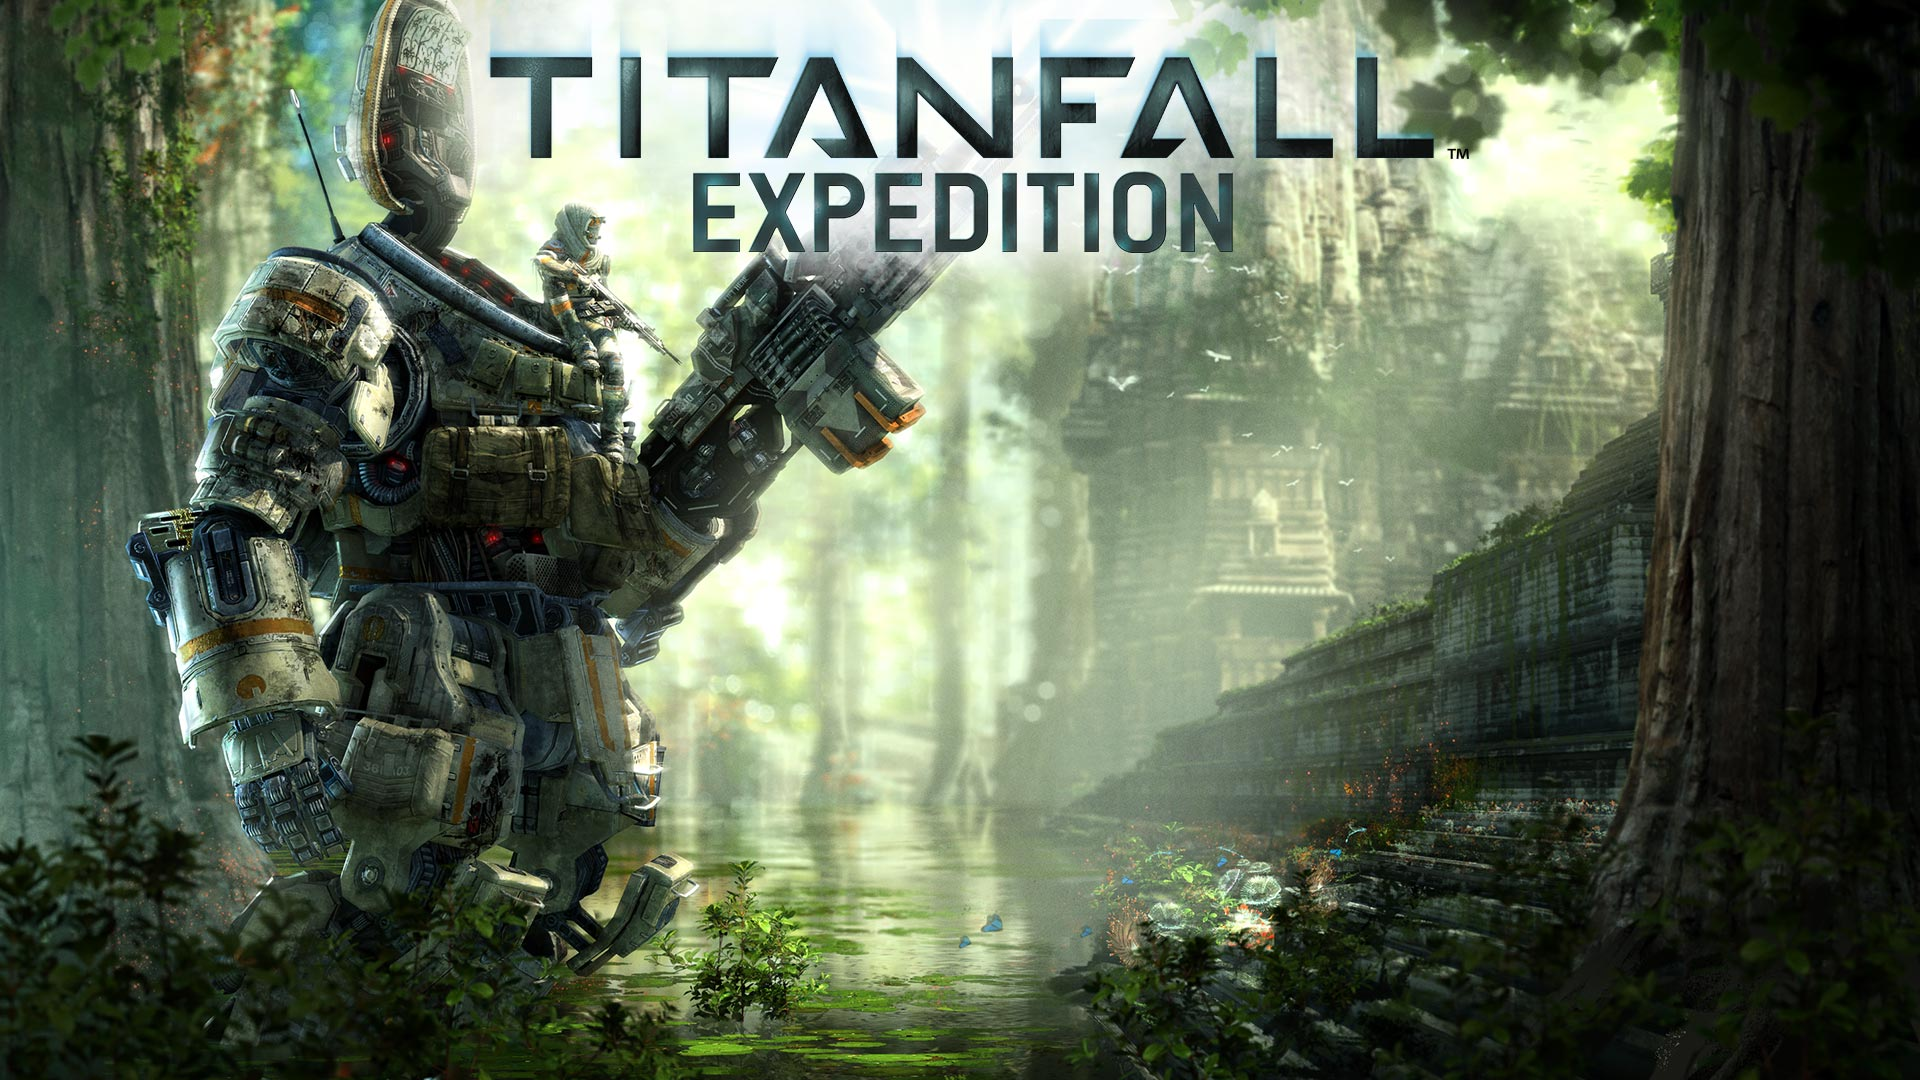 Titanfall-DLC_Expedition_1080p